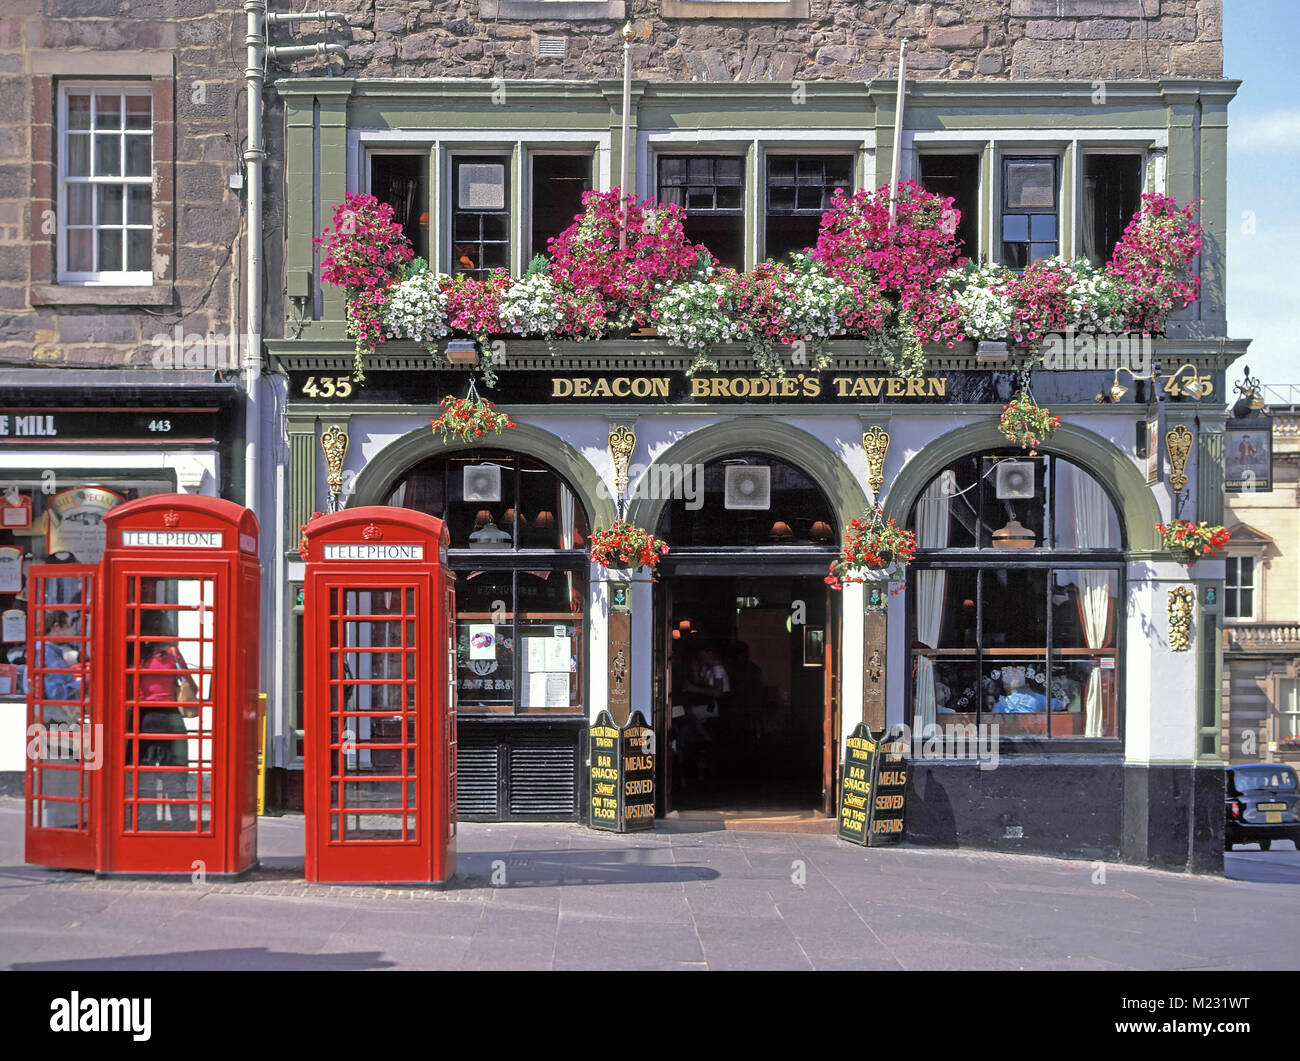 Deacon Brodies Tavern Royal Mile Edinburgh UK part of the Nicholson's brand of British Pub named after infamous - Stock Image